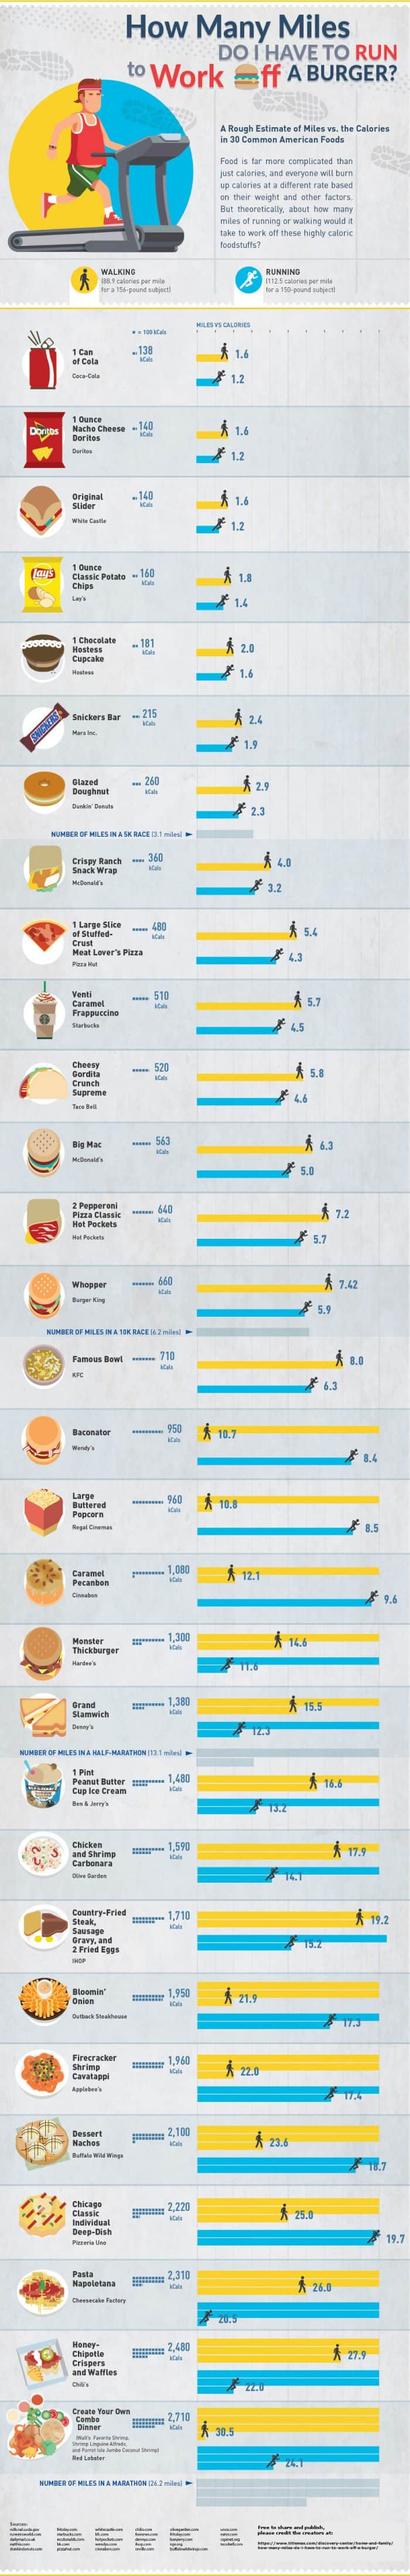 infographic depicting how much exercise is required to burn off junk food calories